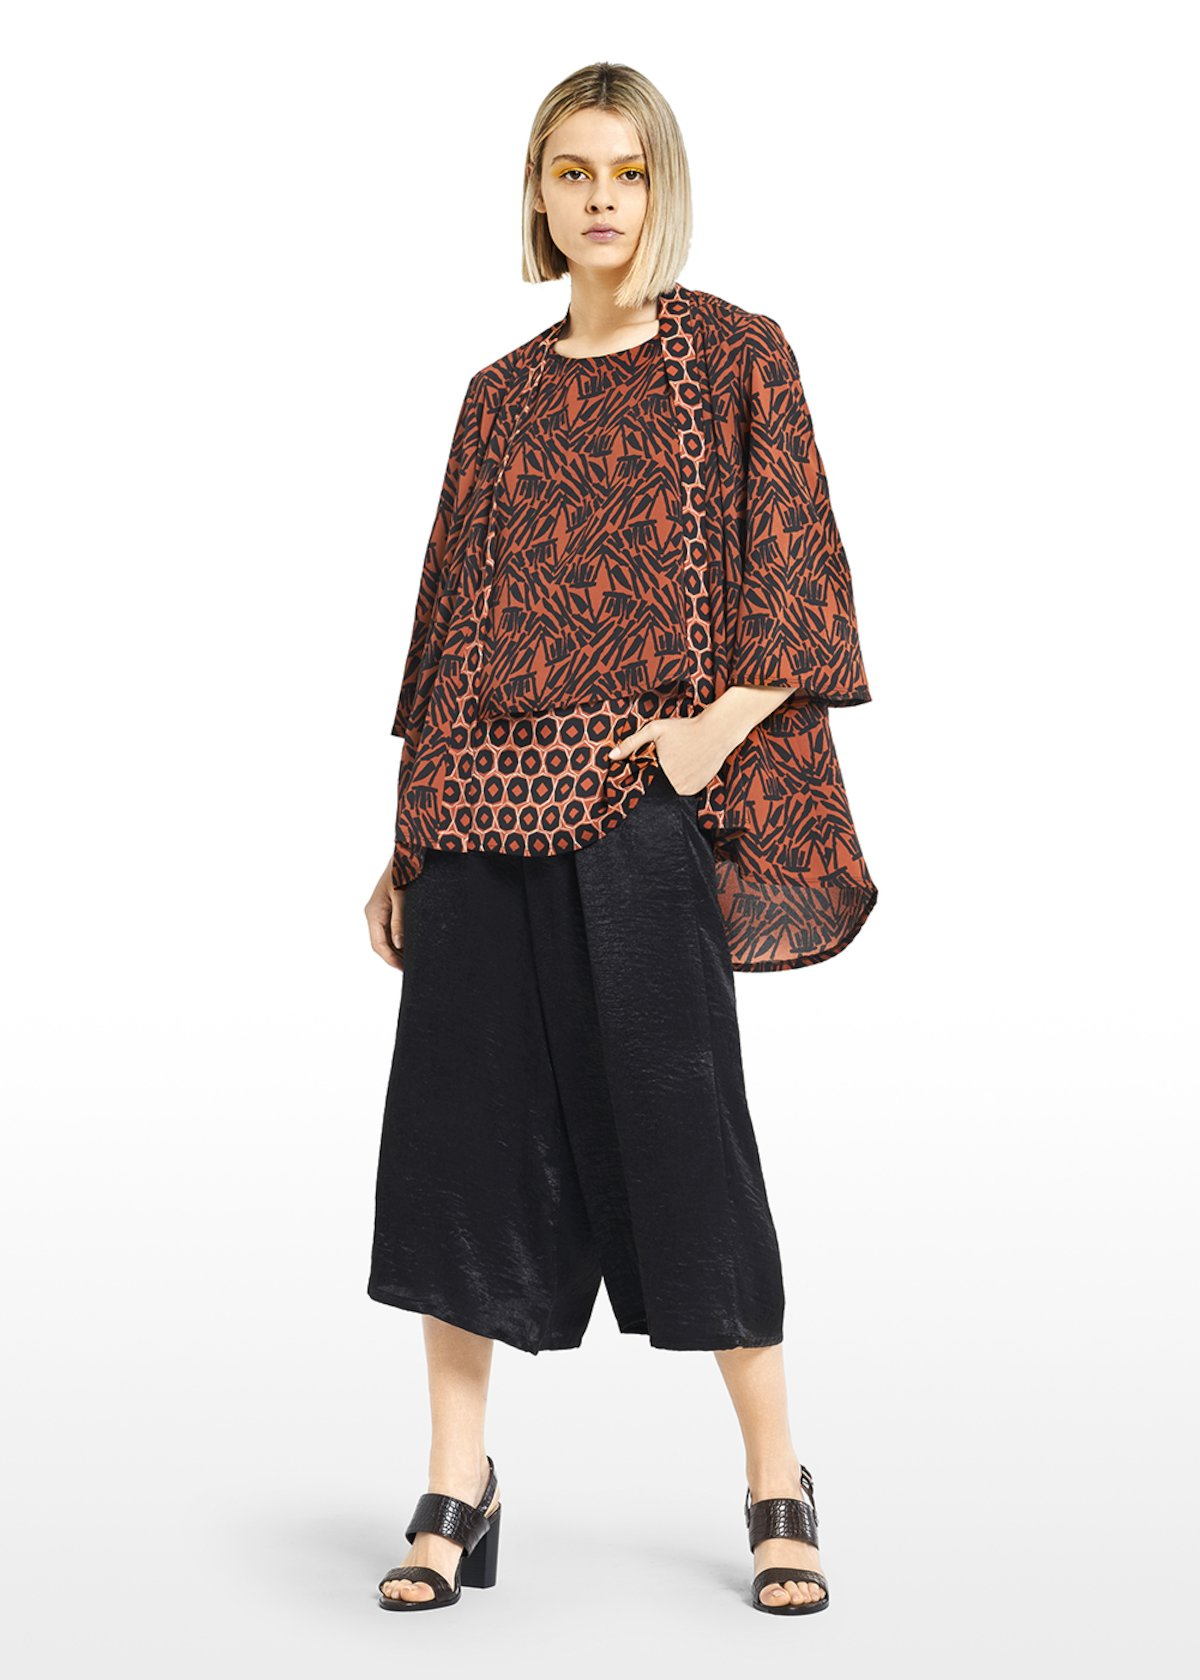 Coprispalle Clara effetto kimono in crêpe - Carota / Black  Fantasia - Donna - Immagine categoria